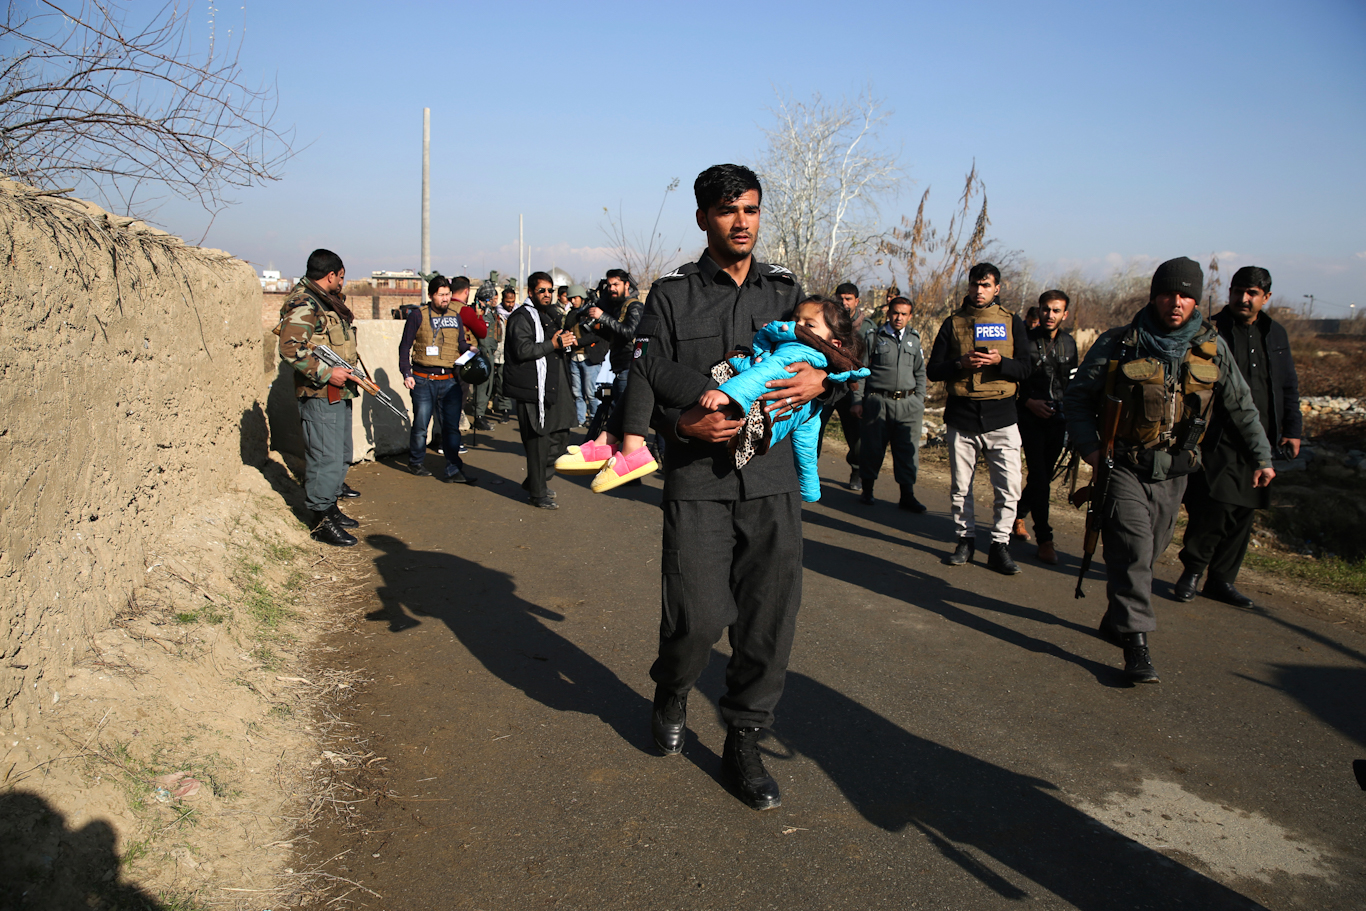 A police officer carries his injured daughter after an attack near a U.S. Air Base In Parwan province of Kabul, Afghanistan, Dec. 11, 2019. Rahmat Gul | AP